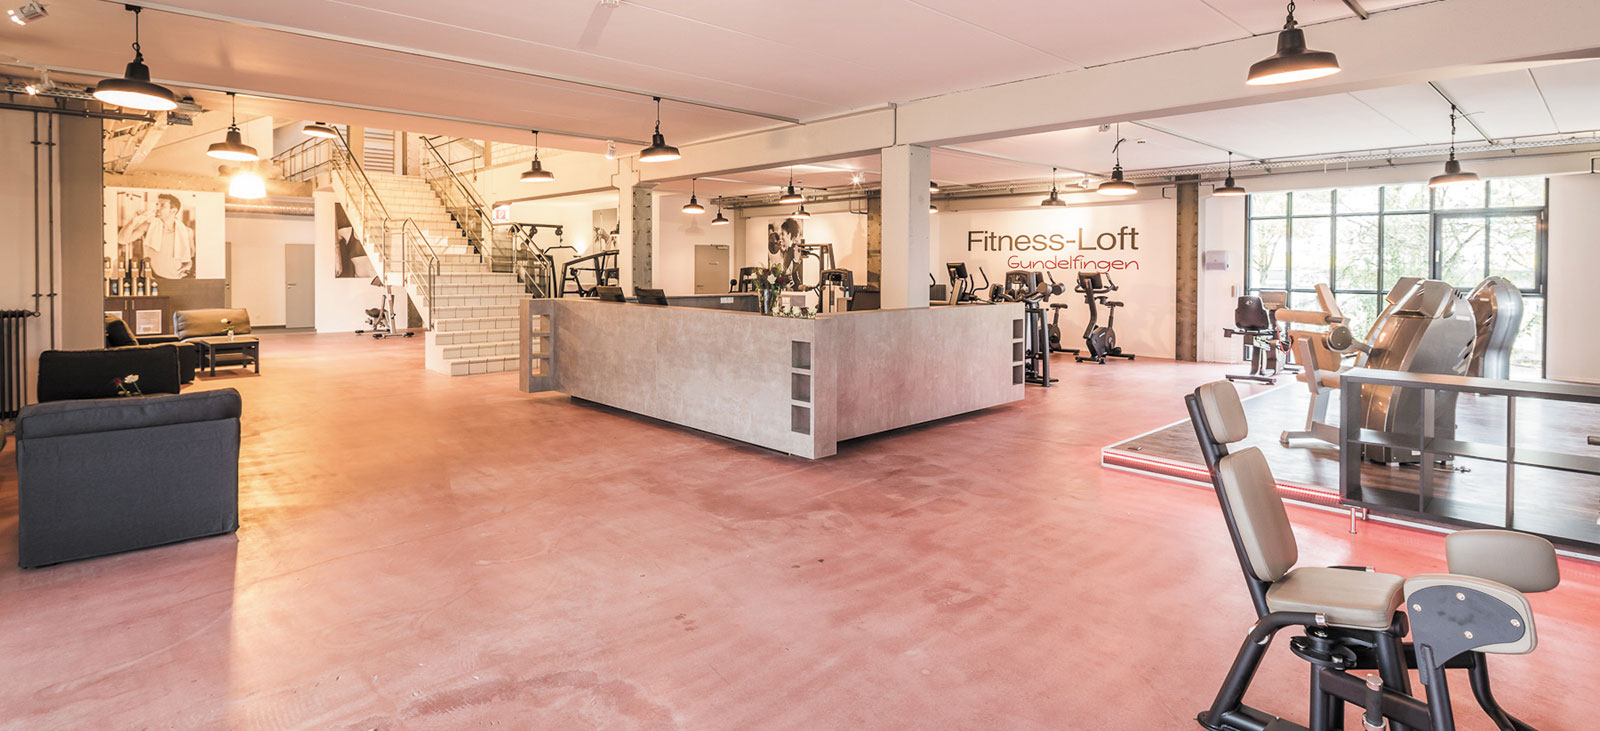 Fitness-Loft Gundelfingen an der Rezeption